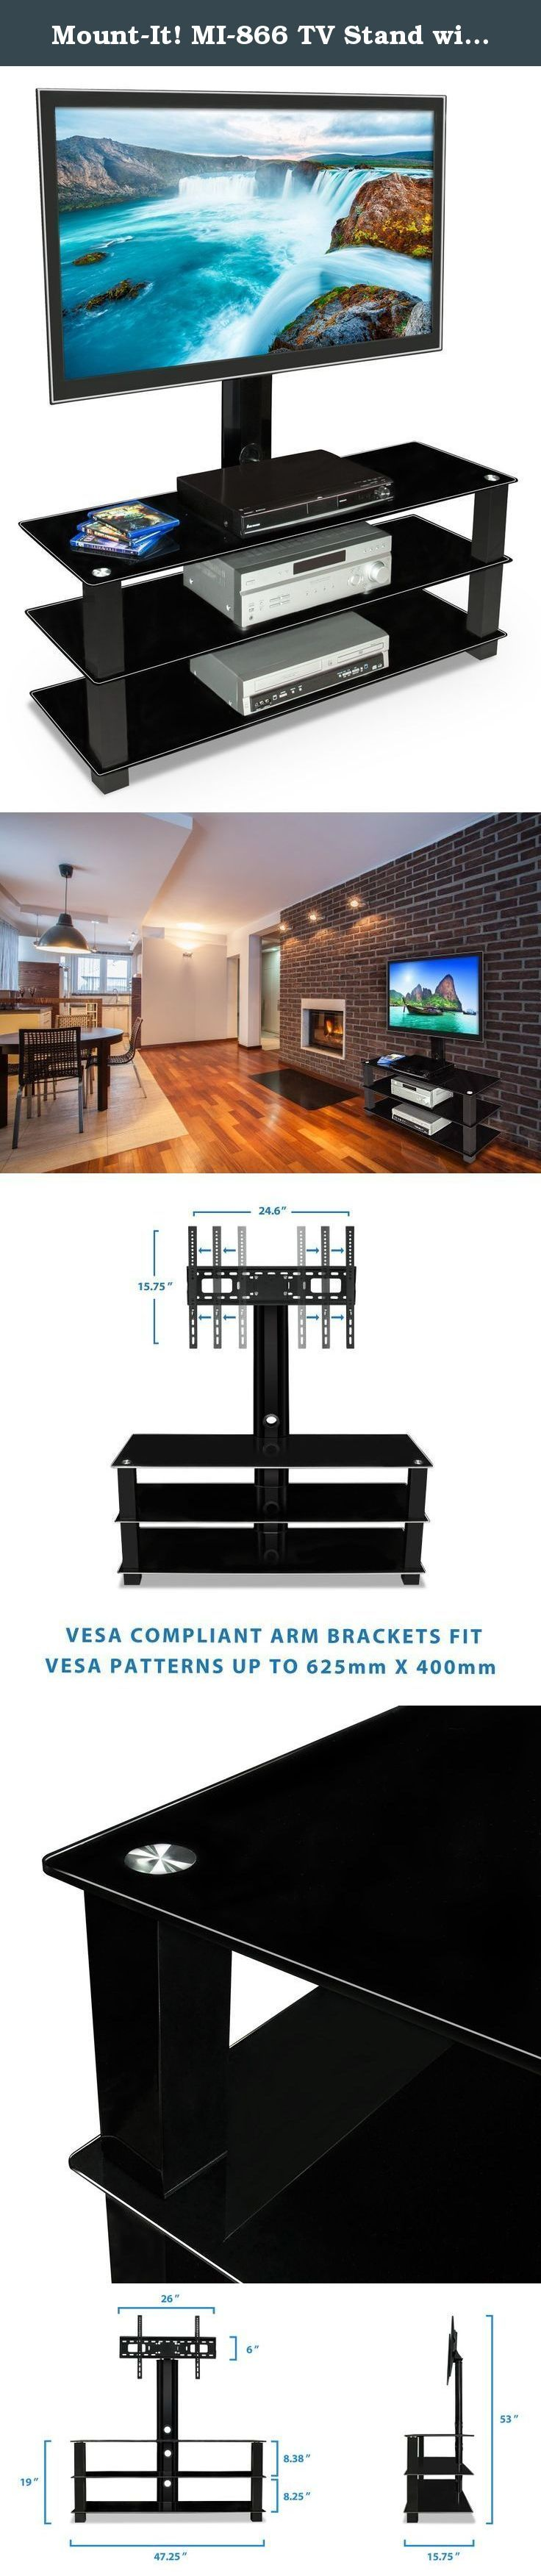 Mount-It! MI-866 TV Stand with Mount, Entertainment Center for Flat Screen TVs Between 32 to 60 Inch, 3 Tempered Glass Shelves and Powder Coated Aluminum Columns, VESA Compatible TV Mount, Black. Mount-It! MI-866 contemporary TV mount and media component stand combo features three beautiful black silk tempered glass shelves with spacious shelving for all of your surround sound system components, Blu-ray player, game consoles, cable box and place other media components. The built-in TV…